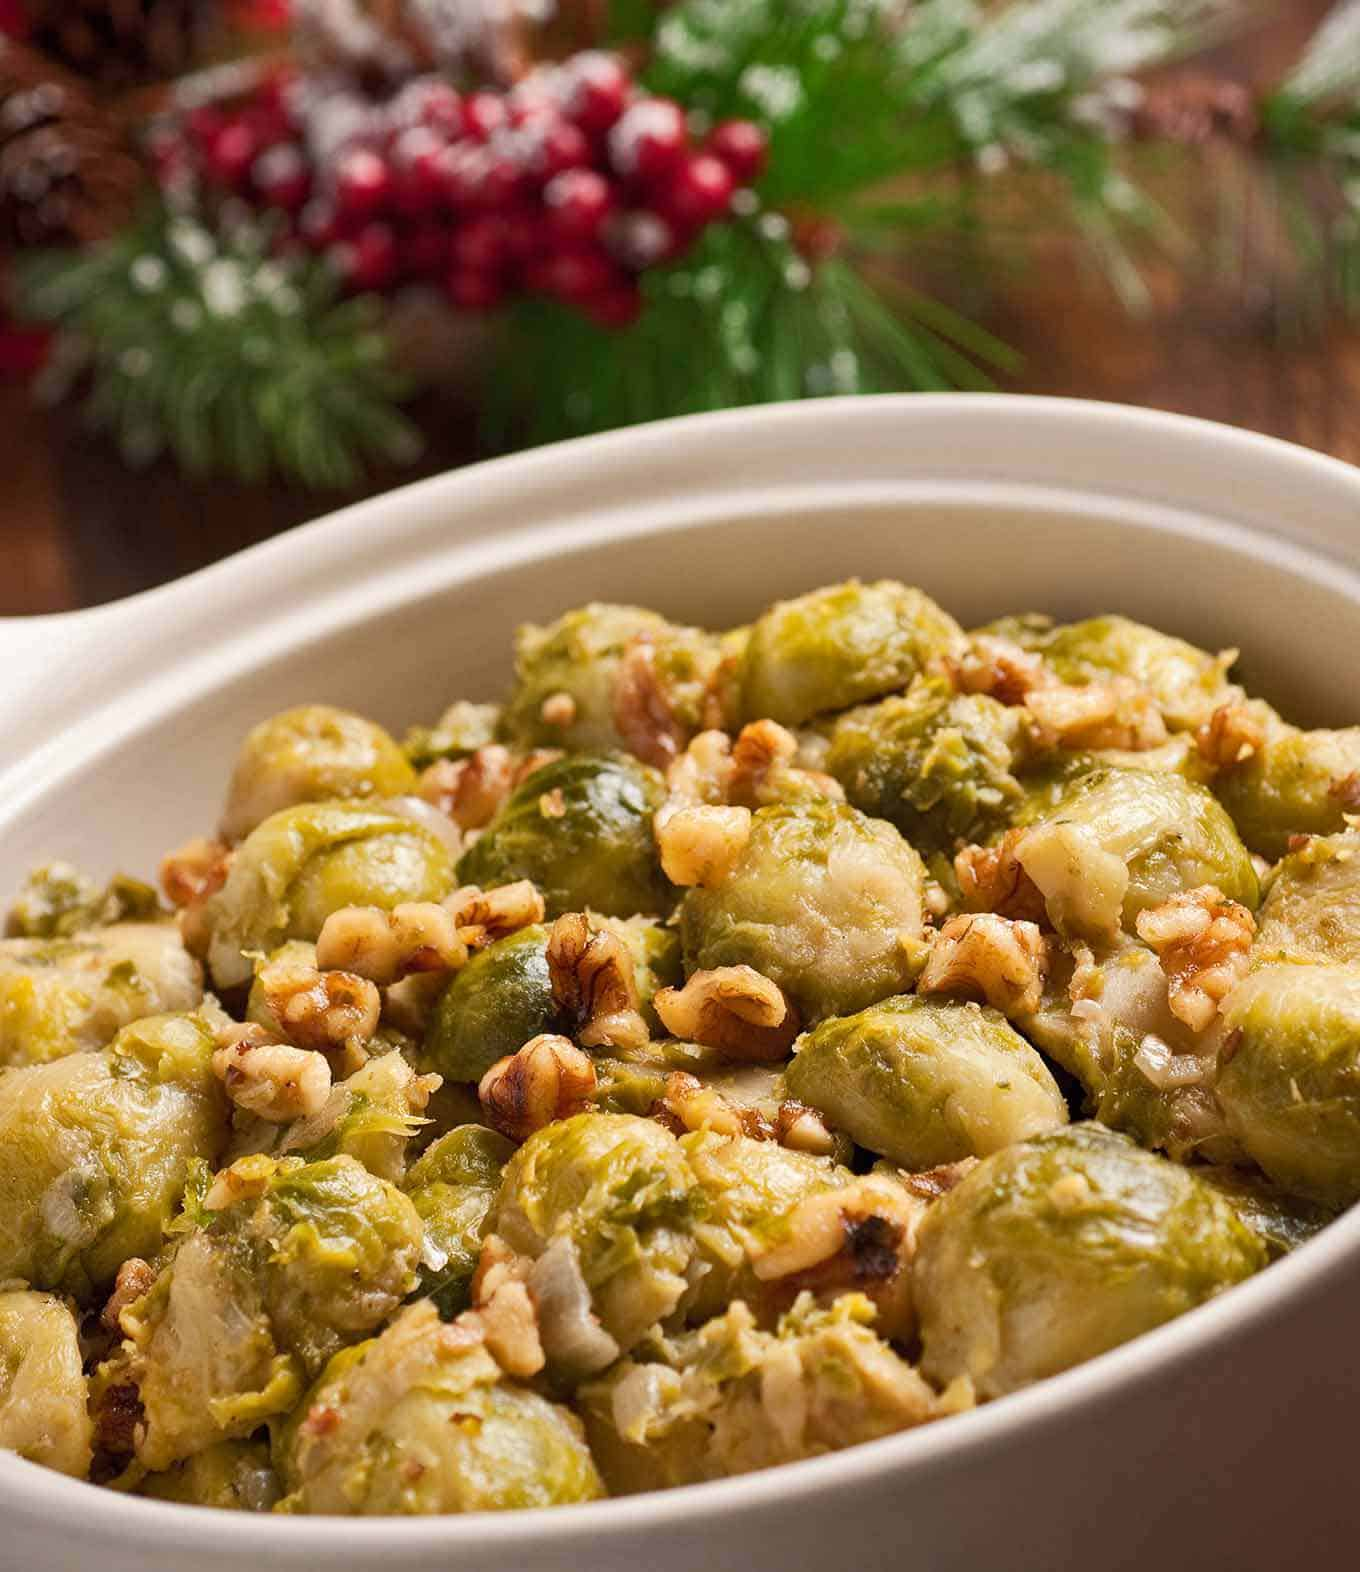 15 Easy Vegetable Recipes For Your Holiday Menu